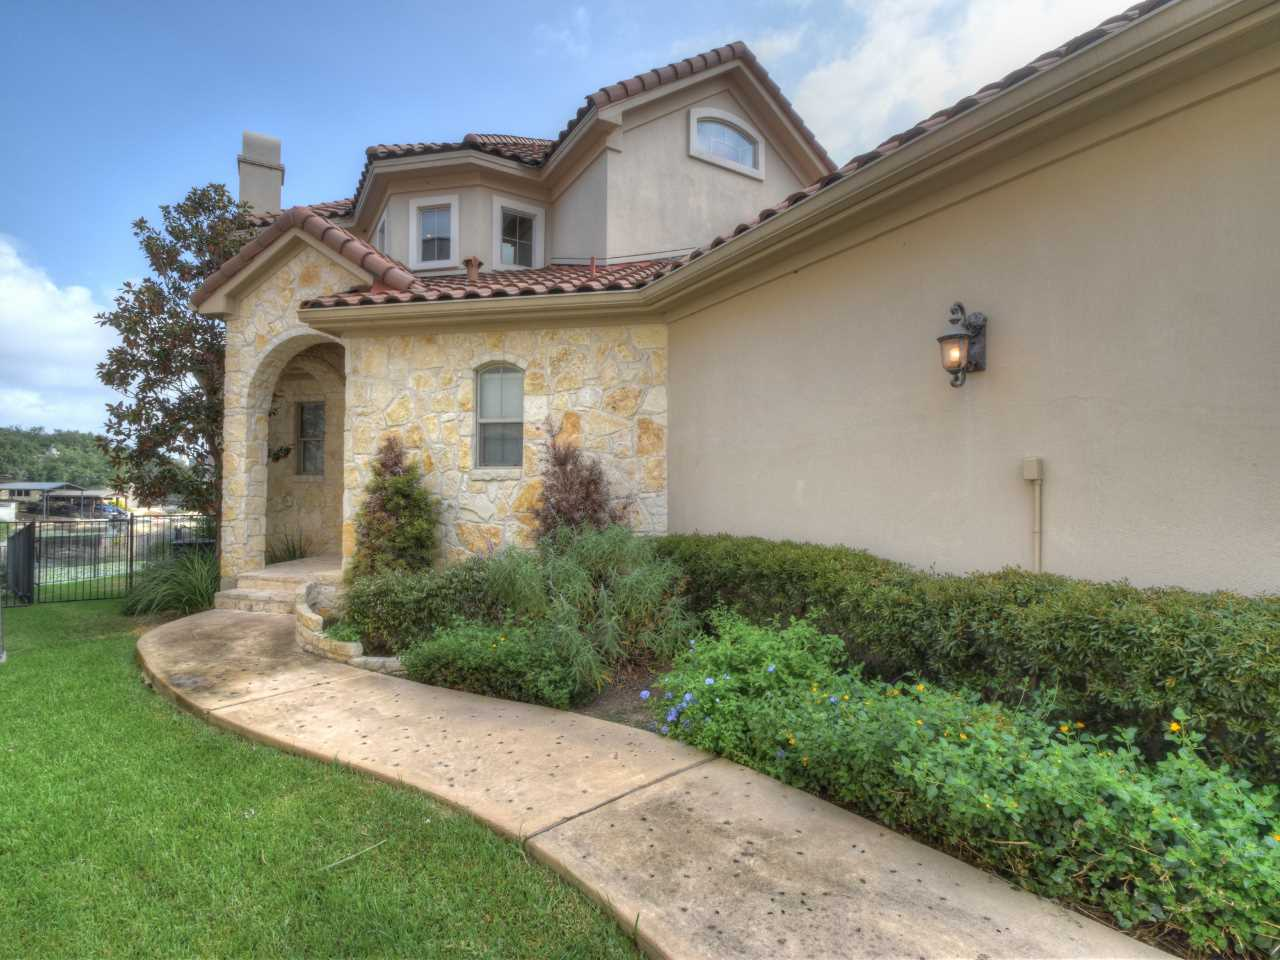 Additional photo for property listing at 2518 Diagonal 2518 Diagonal Horseshoe Bay, Texas 78657 Estados Unidos